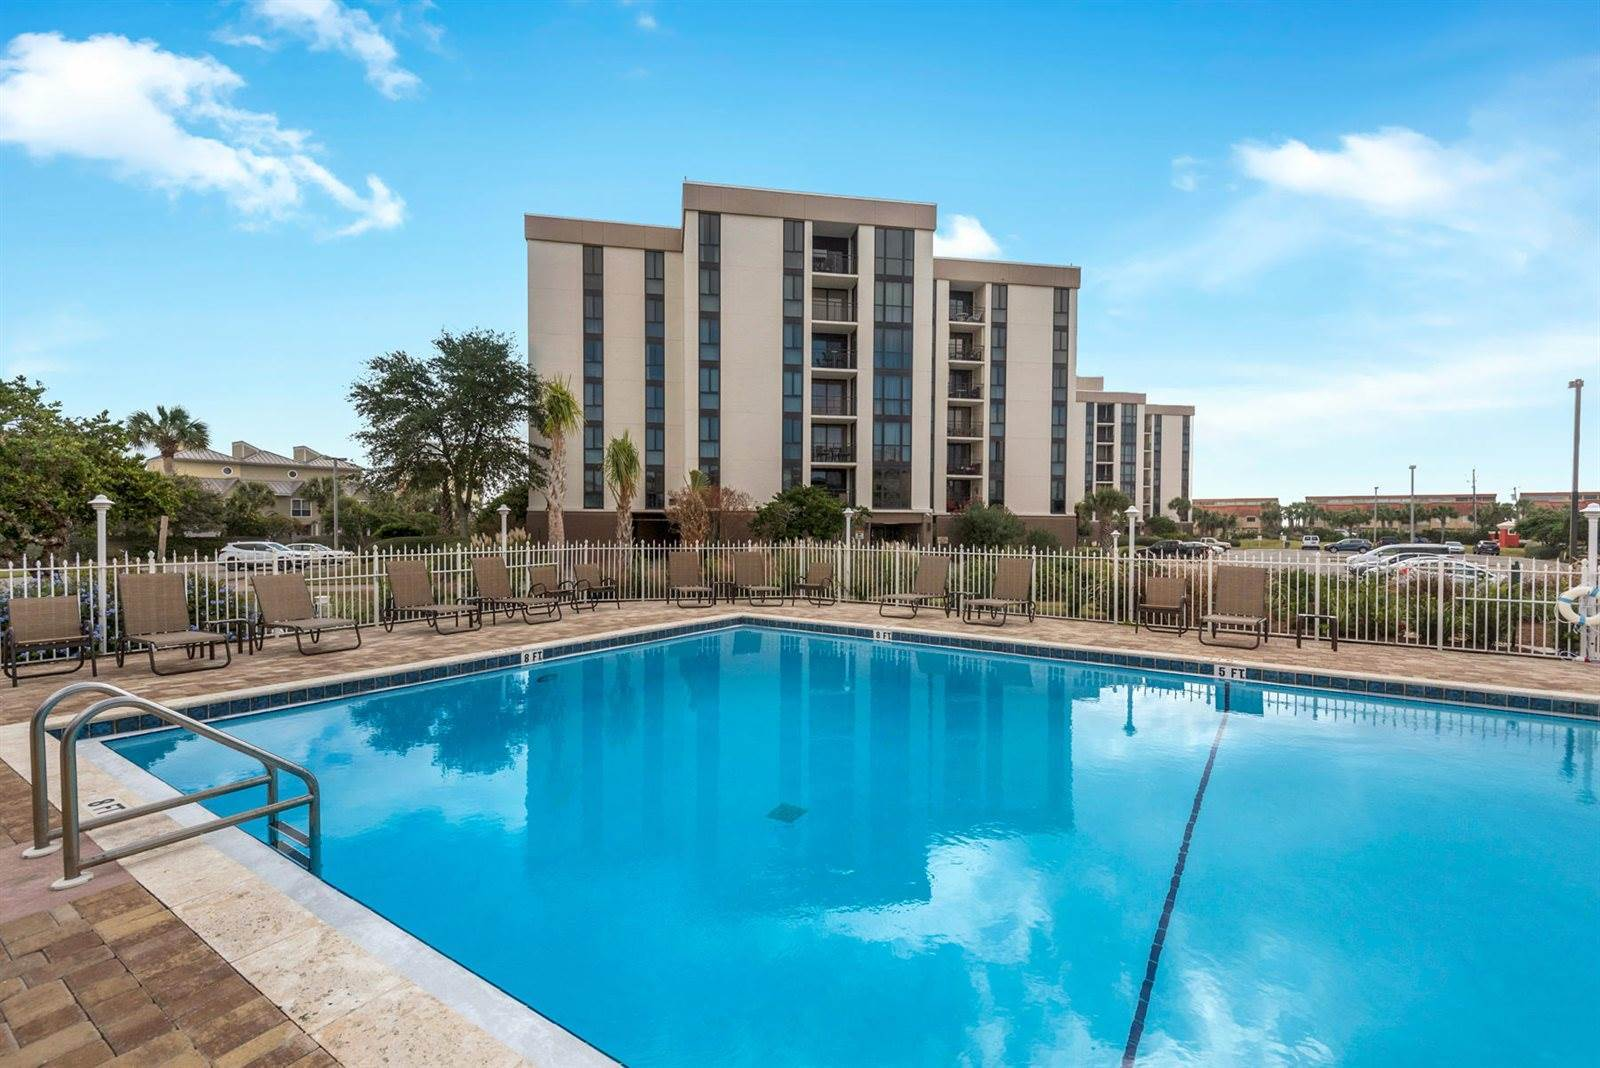 3655 Scenic Highway 98, Unit 503b, Destin, FL 32541